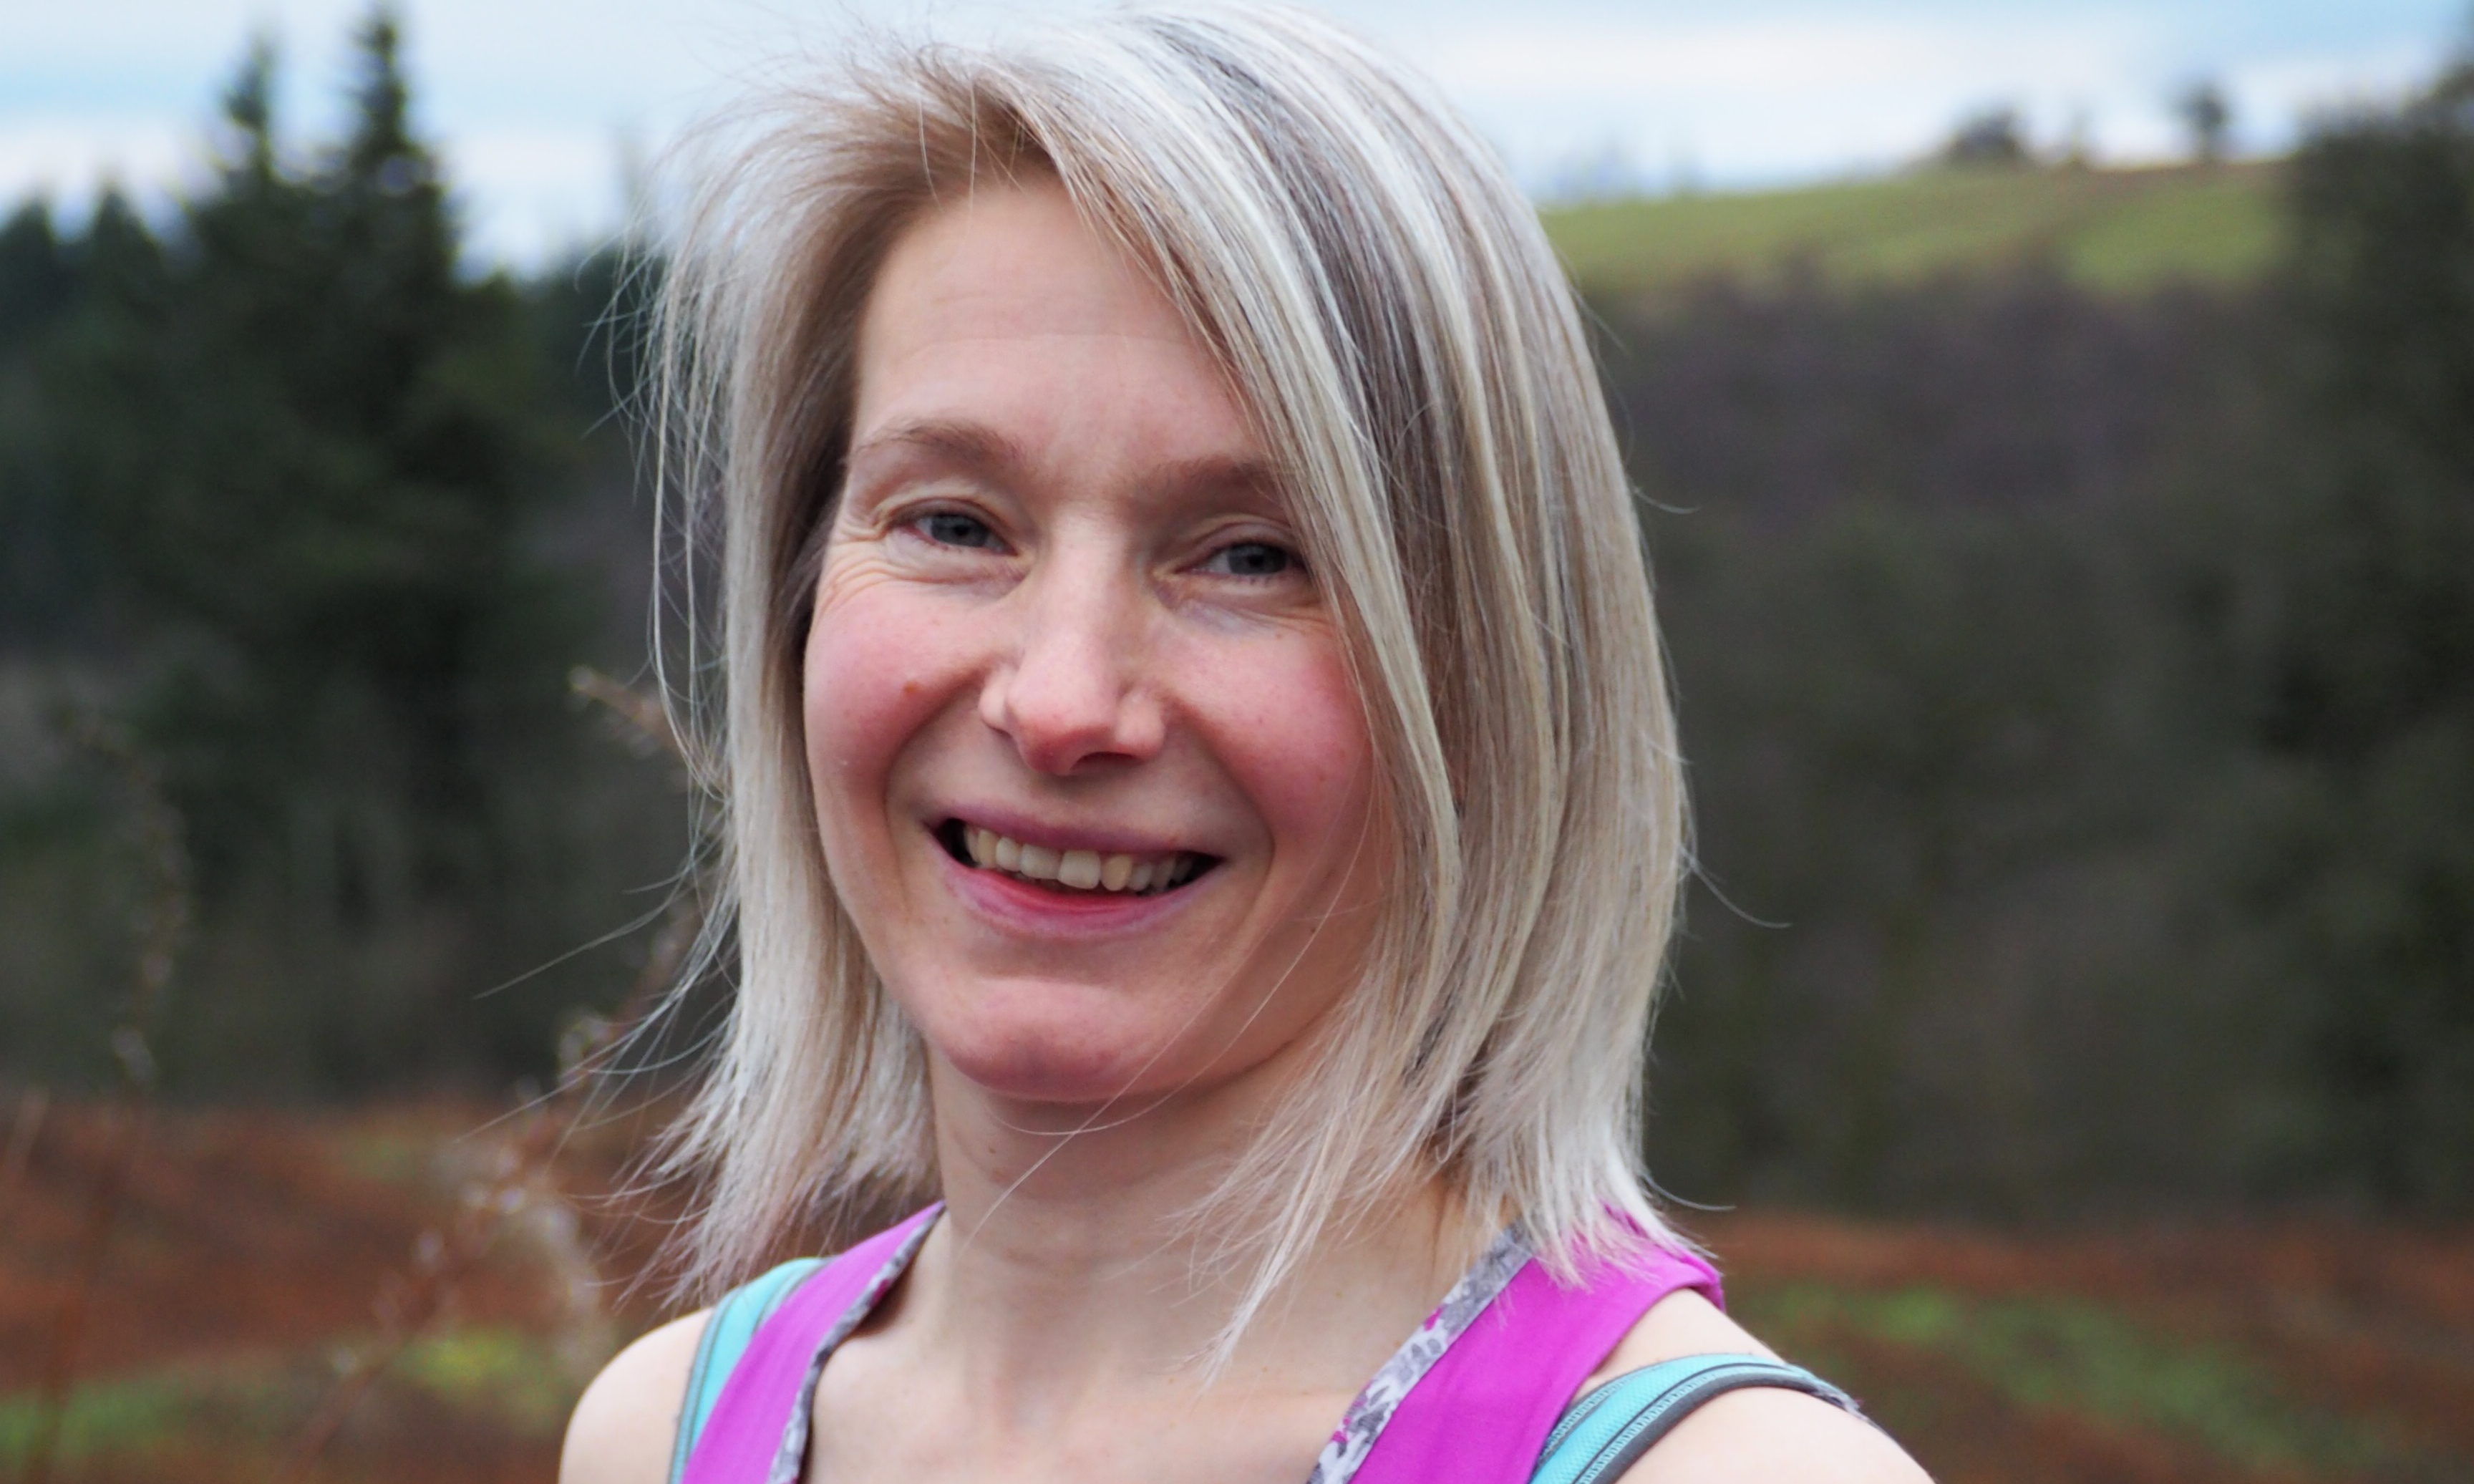 Susie Black is a personal trainer and pilates instructor based in Coupar Angus